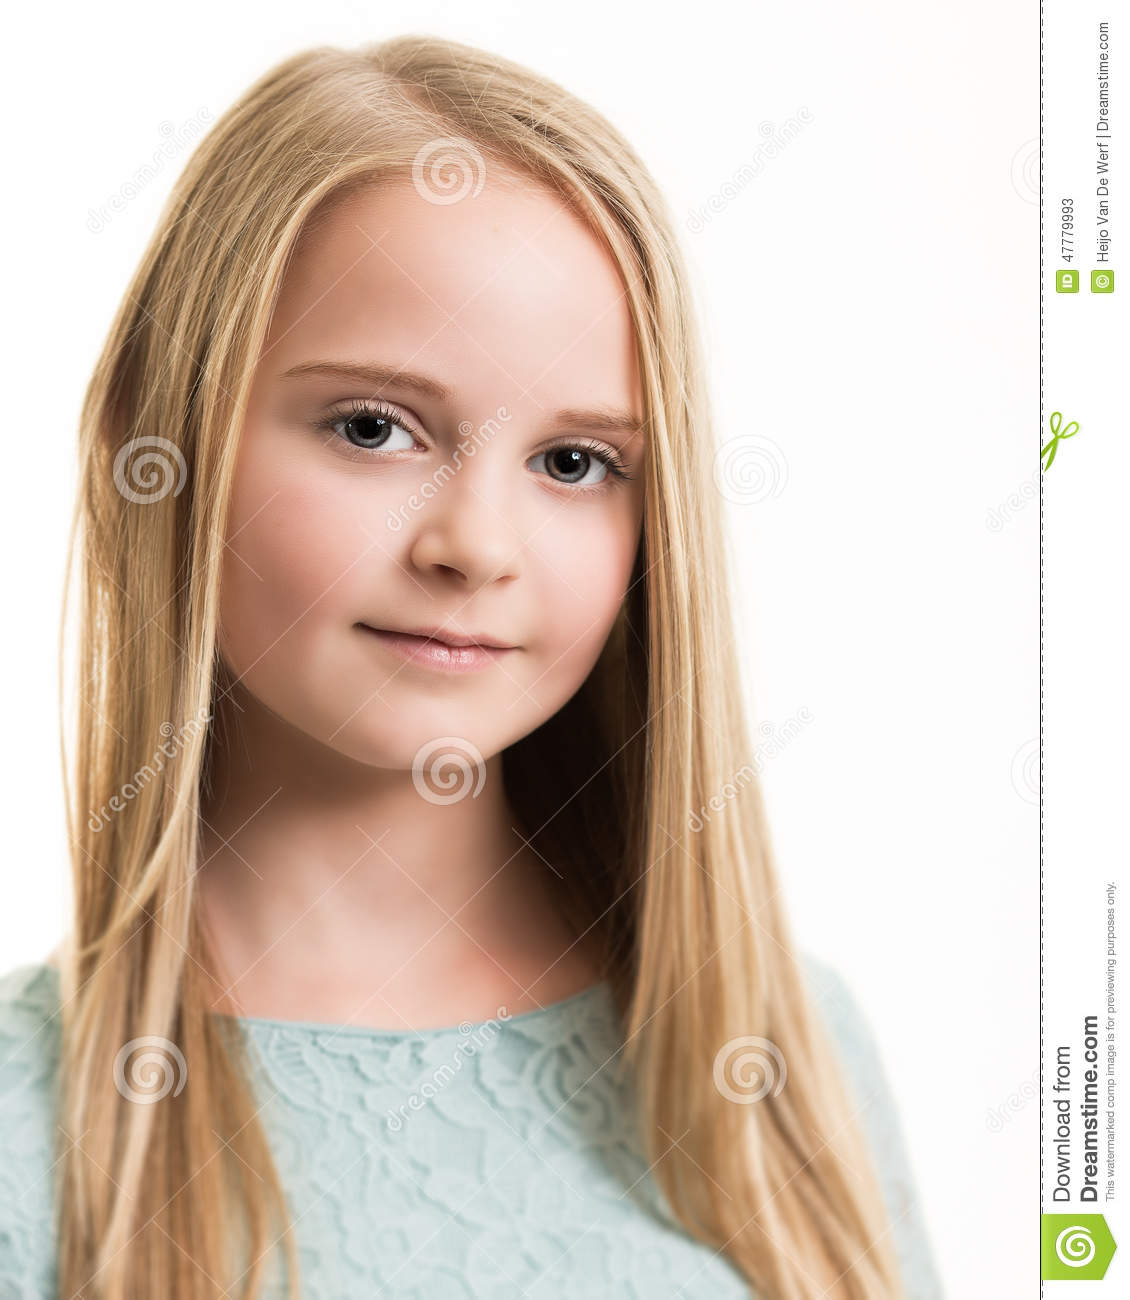 9fa089fb6ee89 Portrait of a young blue eyed teenage girl with long blond hair wearing a  turquoise blue green top with a neutral expression isolated against a white/ light ...